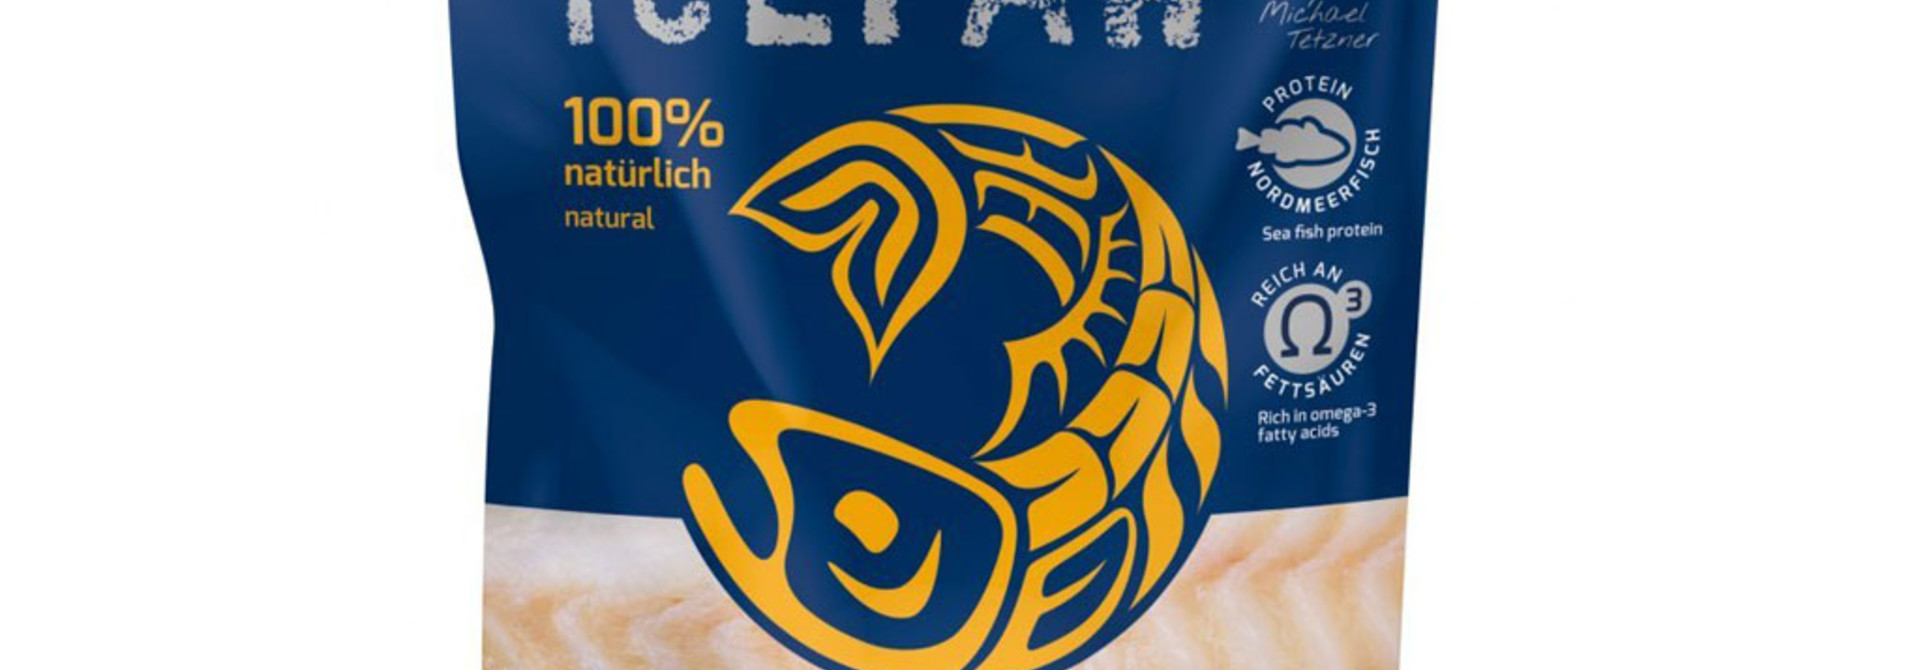 IcePaw Filet Pure for Soup